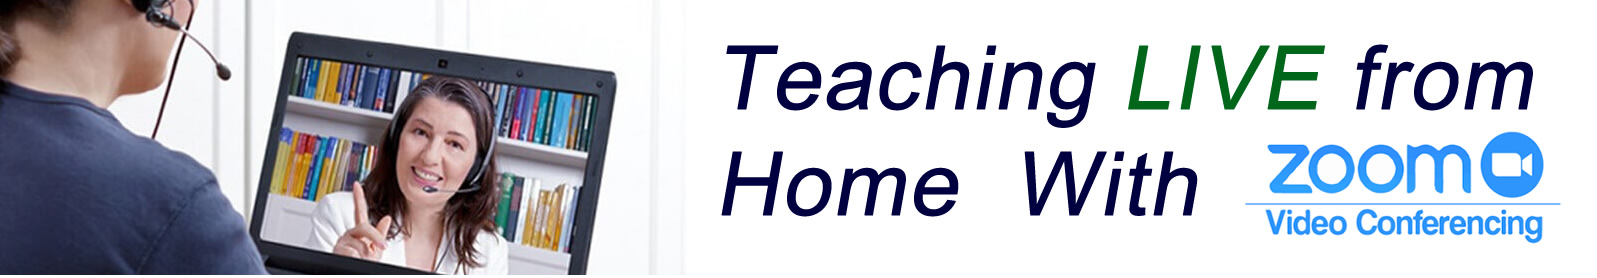 Teaching from home banner